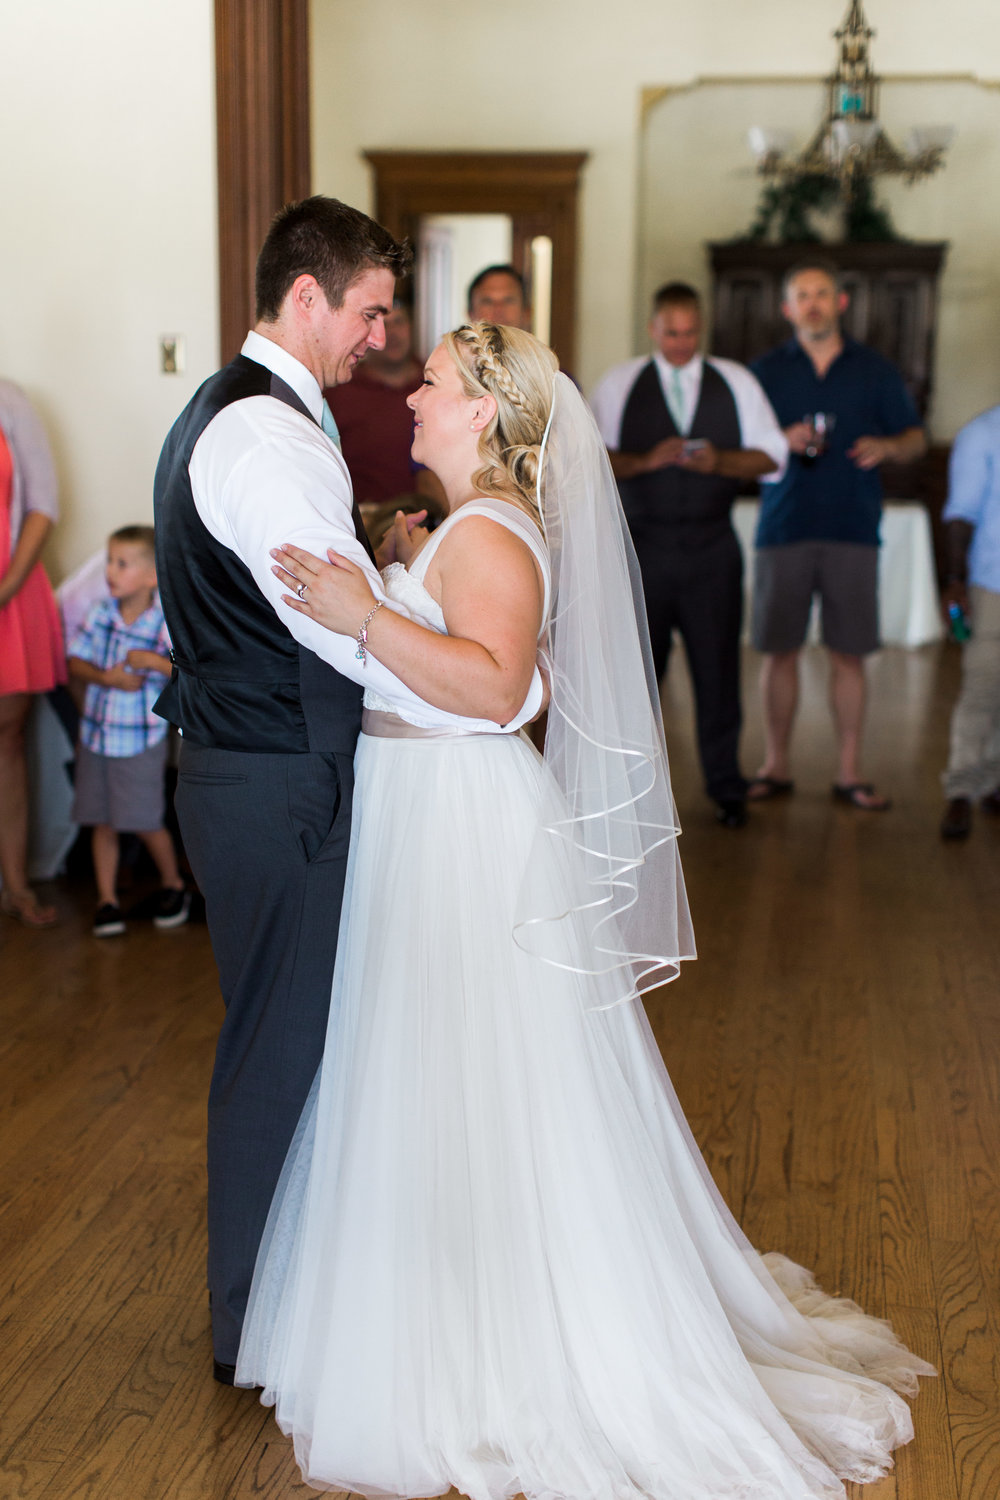 southern-inspired-wedding-at-ravenswood-historic-site-5319.jpg